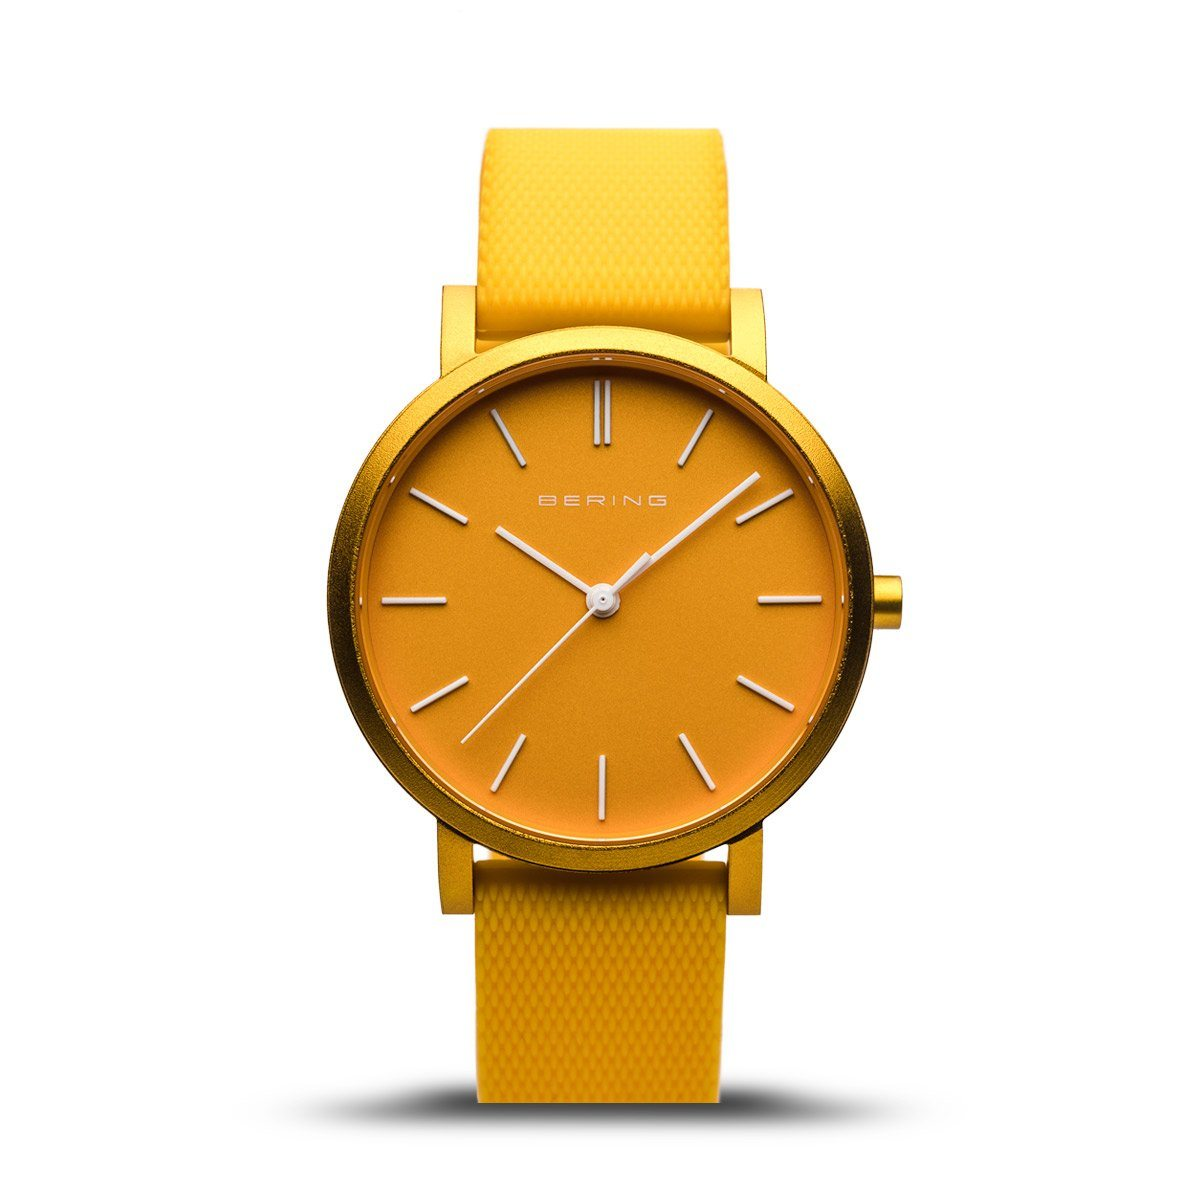 Bering Aurora Unisex Watch in Matt Yellow 16934-699 Watches Bering